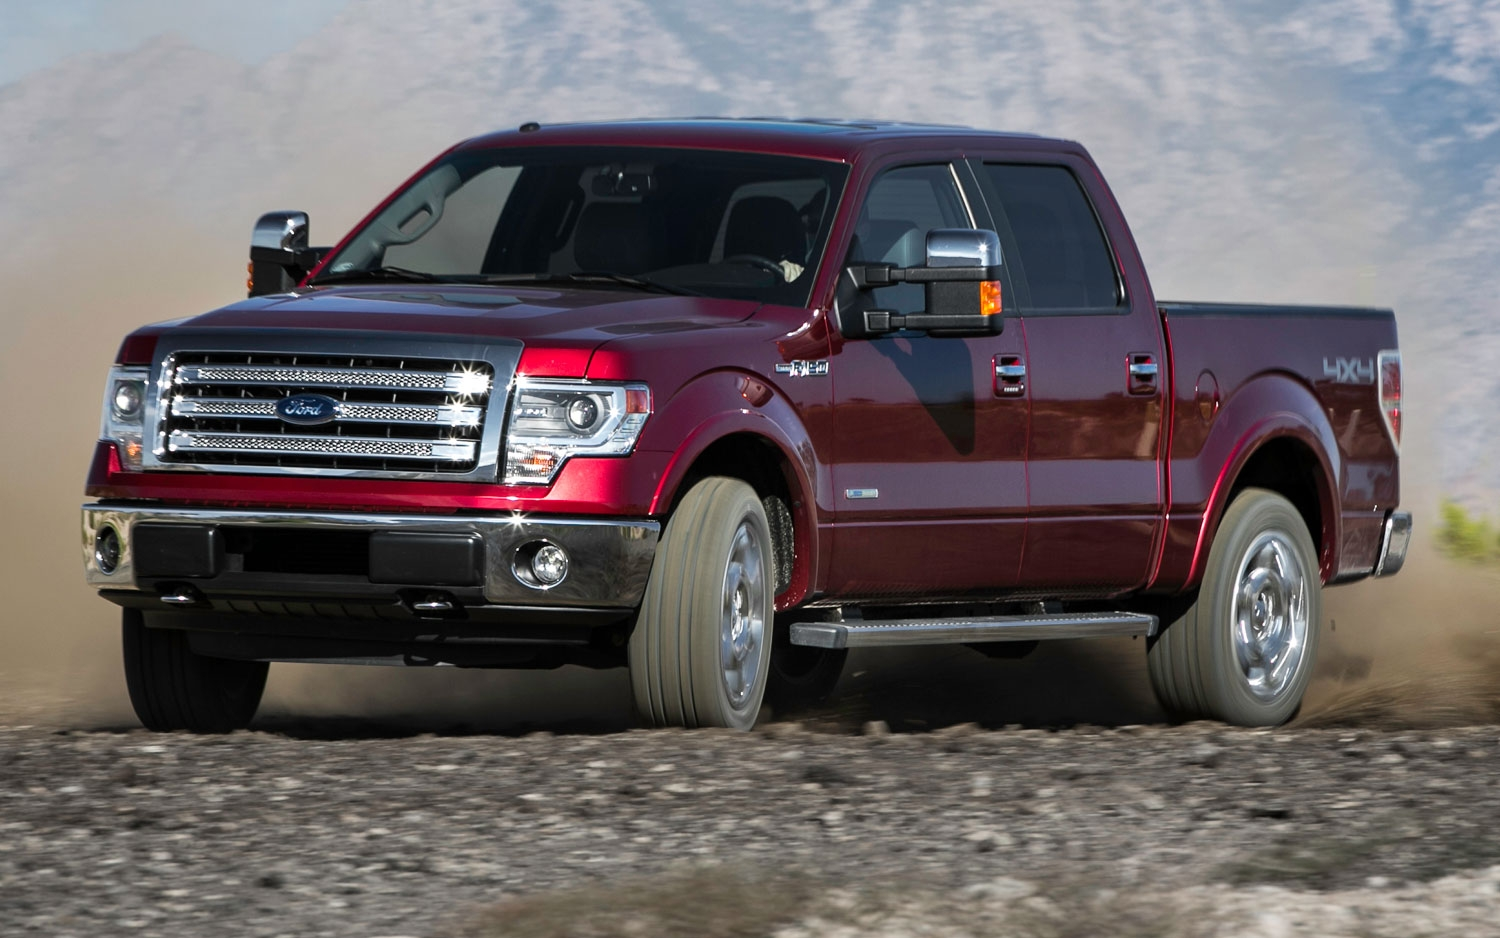 big recall of ford f 150 trucks issued by company 620